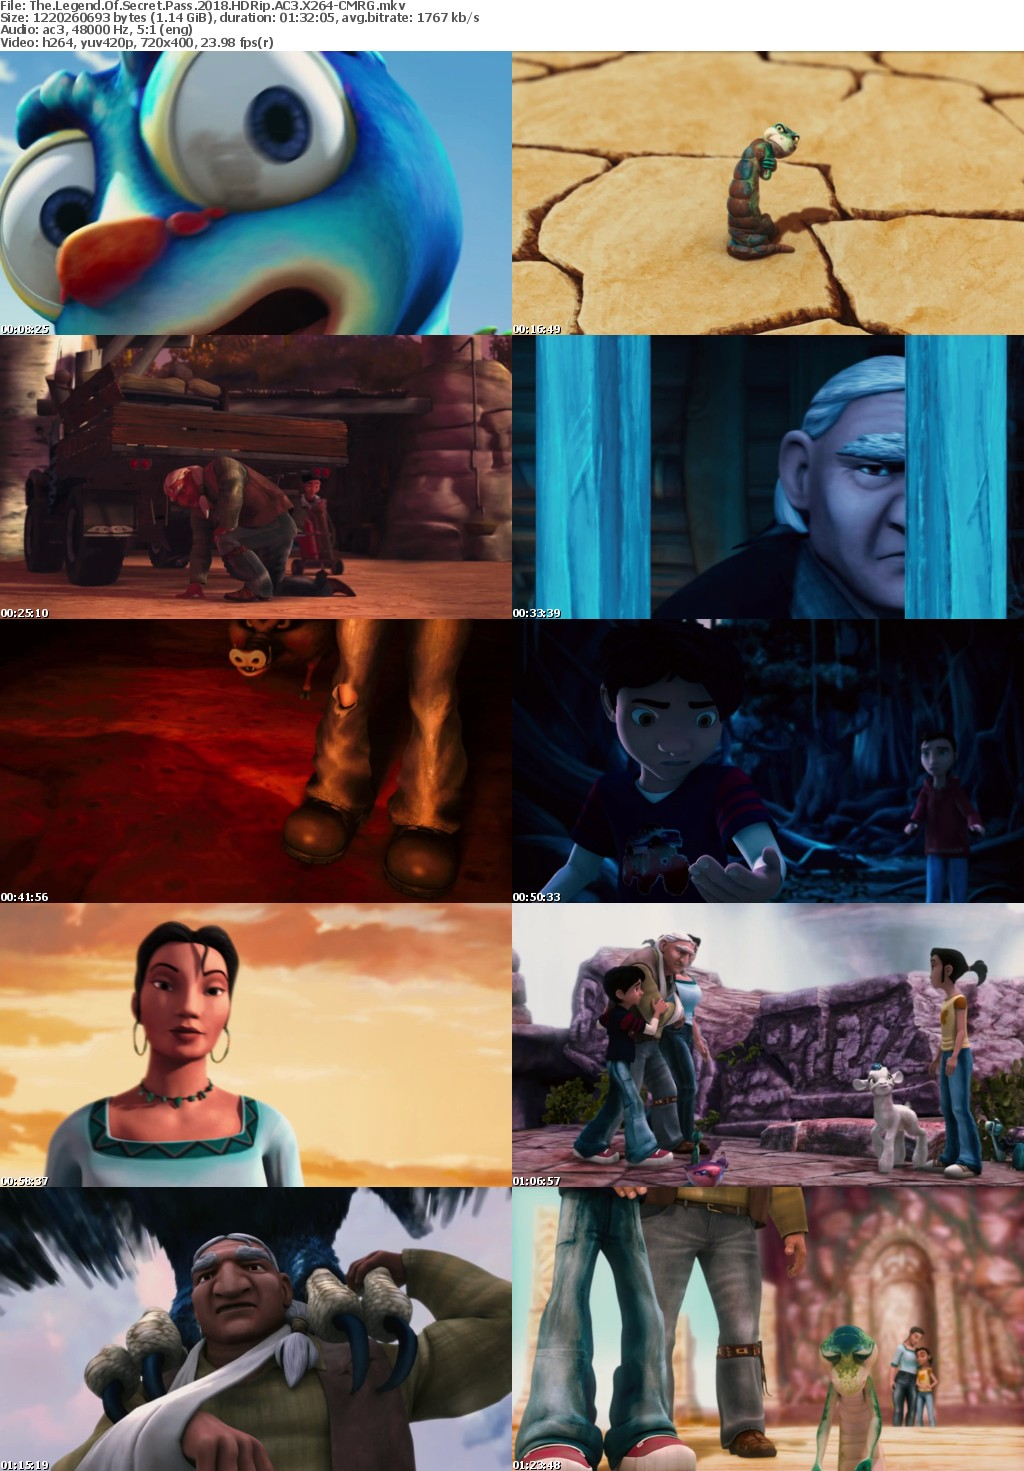 The Legend Of Secret Pass (2018) HDRip AC3 X264-CMRG